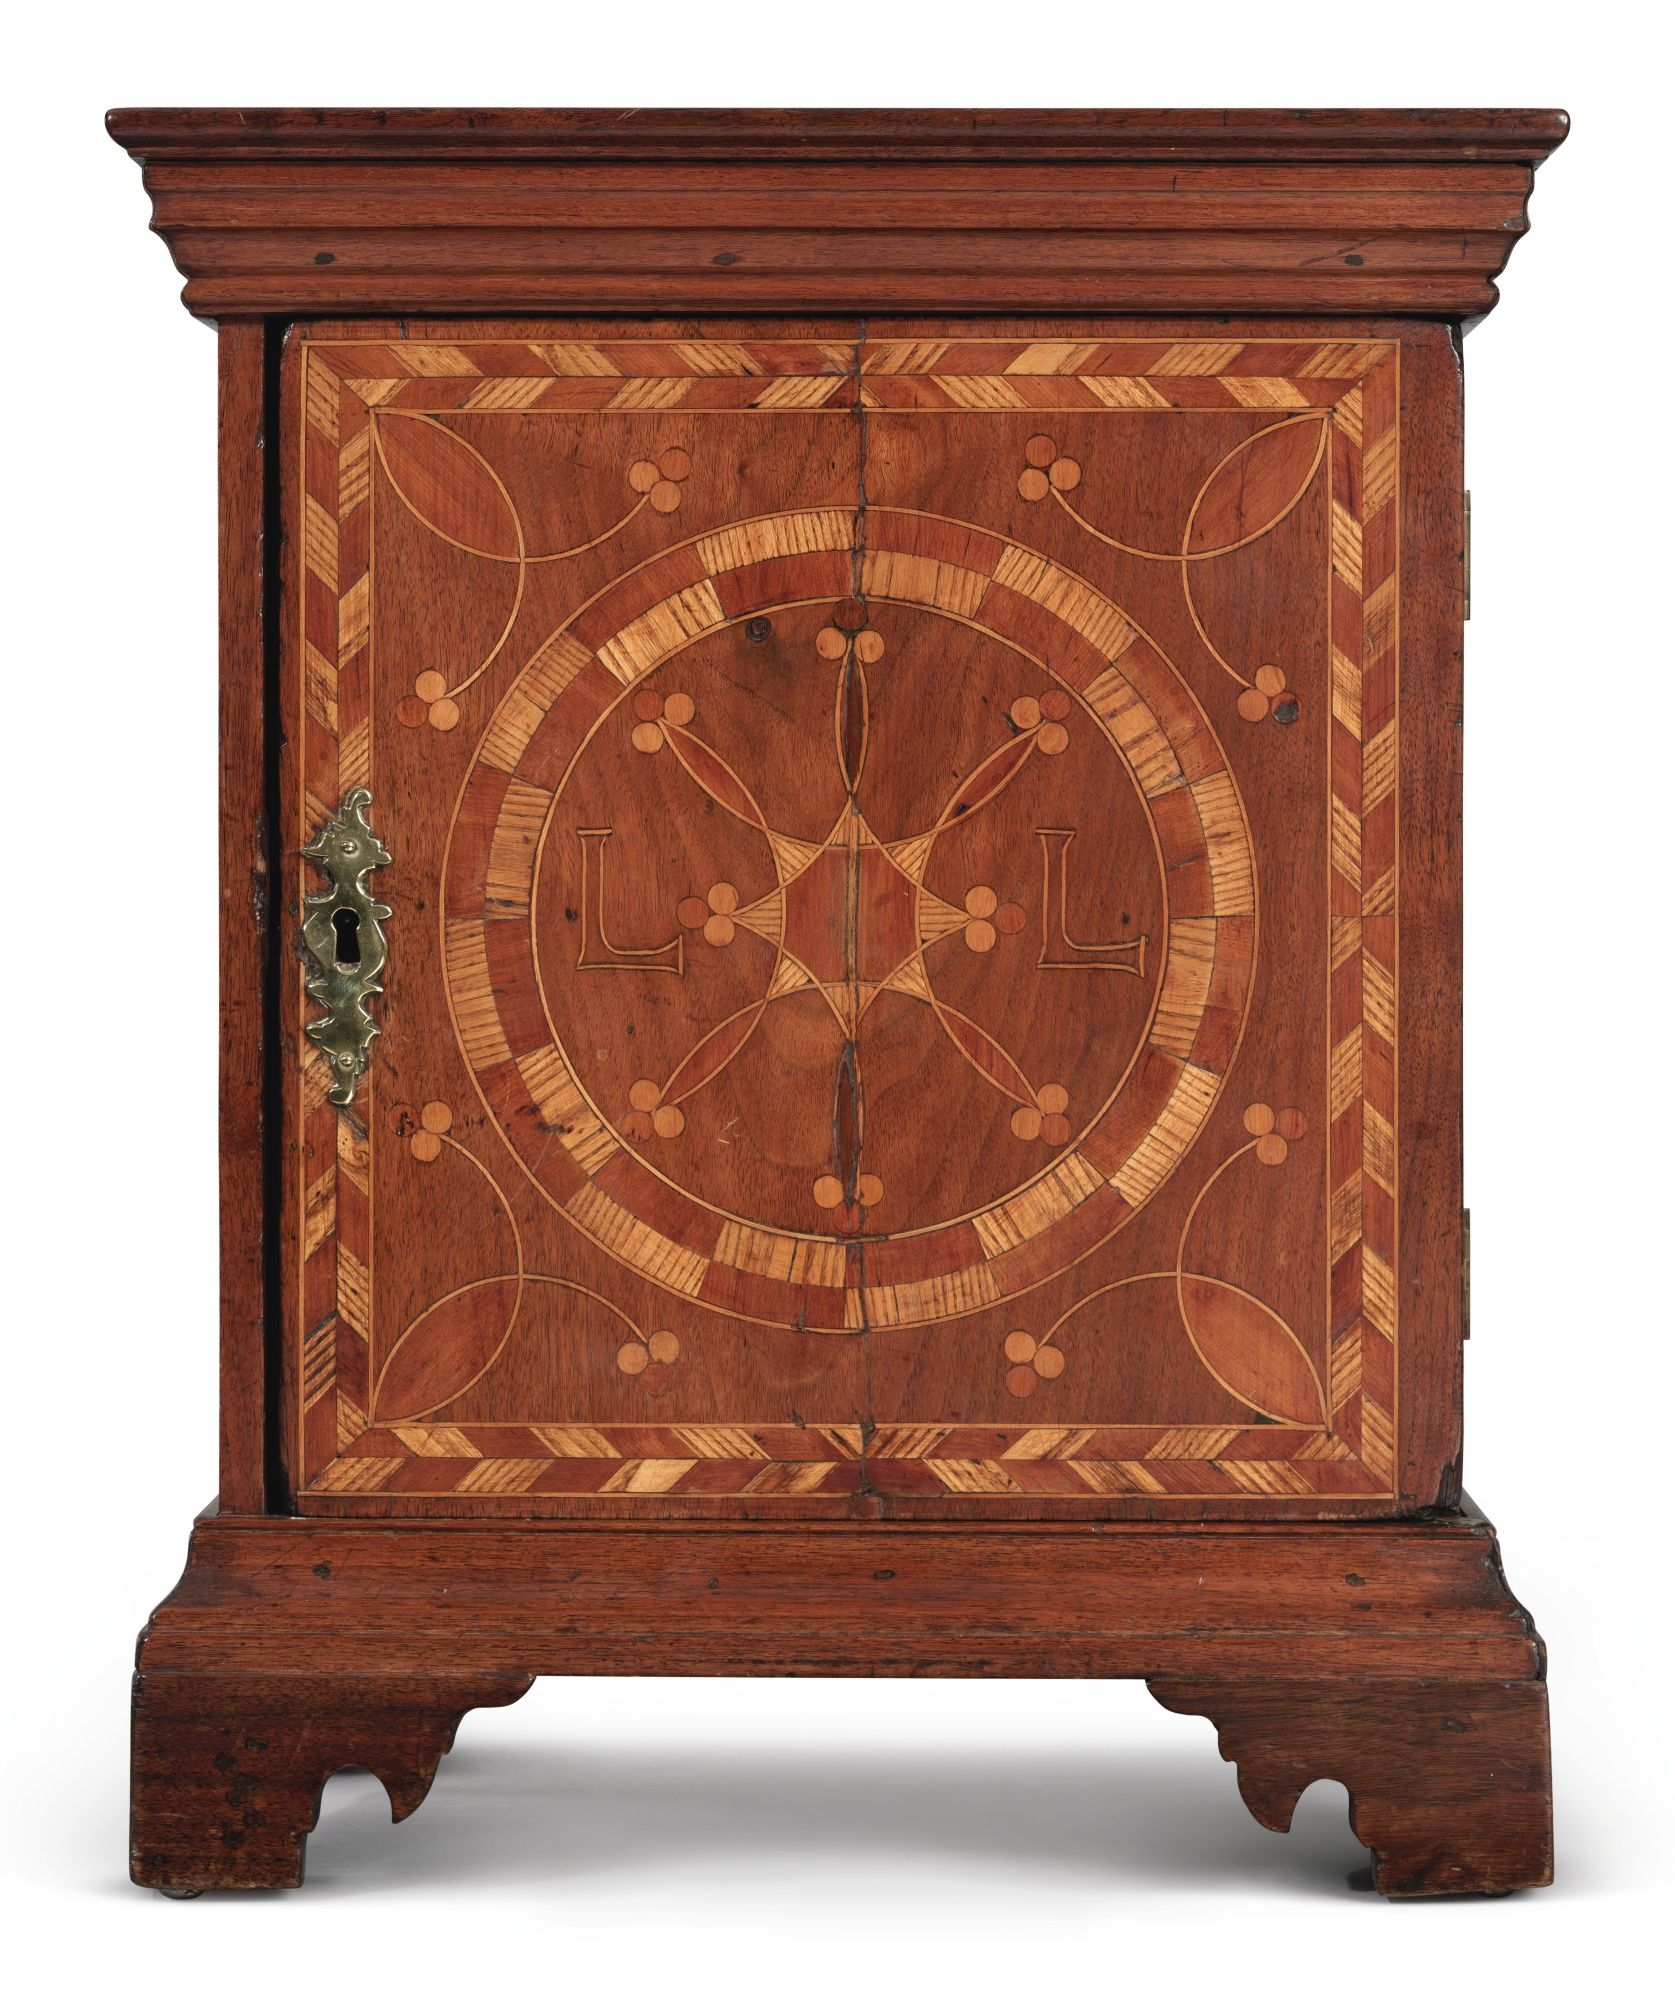 C 1760 Very Rare Chippendale Compass Inlaid Walnut Red